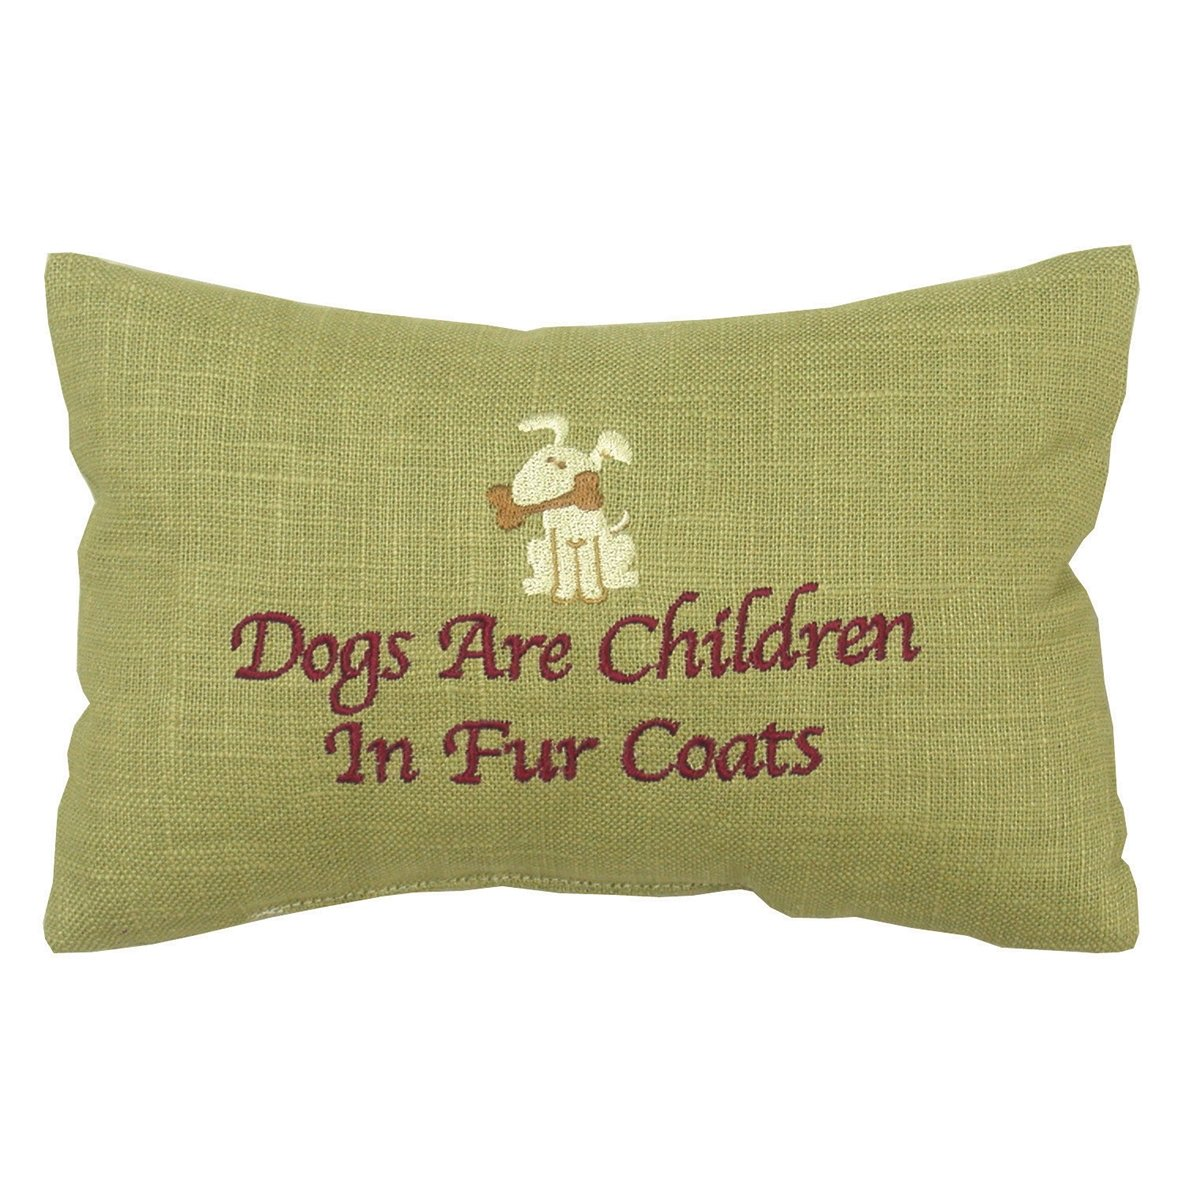 Dogs Are Children Pillow